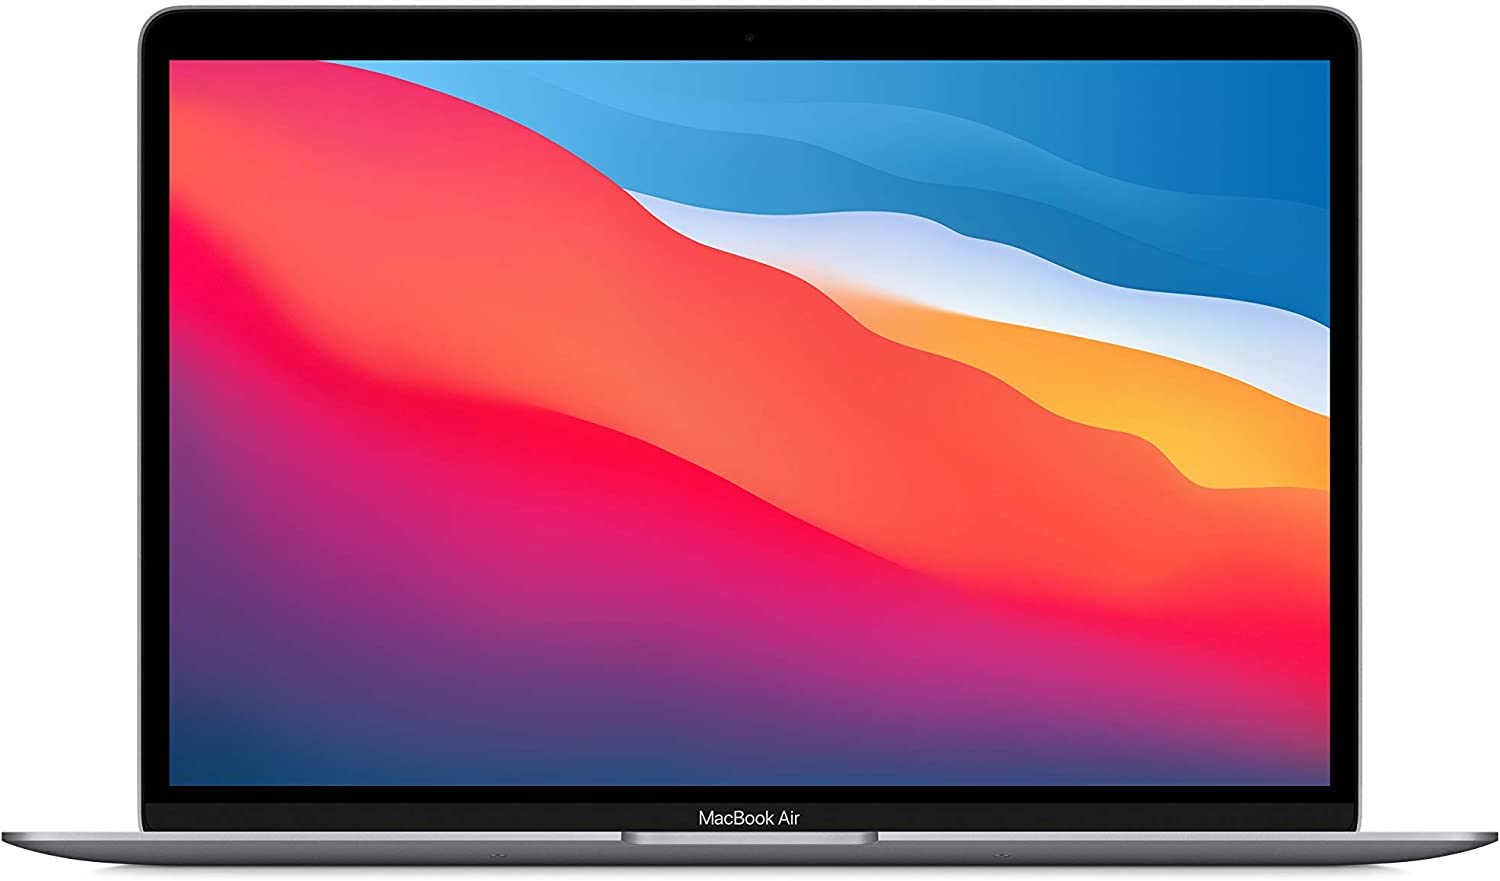 2020 Apple MacBook Air - 13-inch | Apple M1 Chip | 8GB RAM | 256GB SSD | 8-Cores | FP Reader - Space Gray